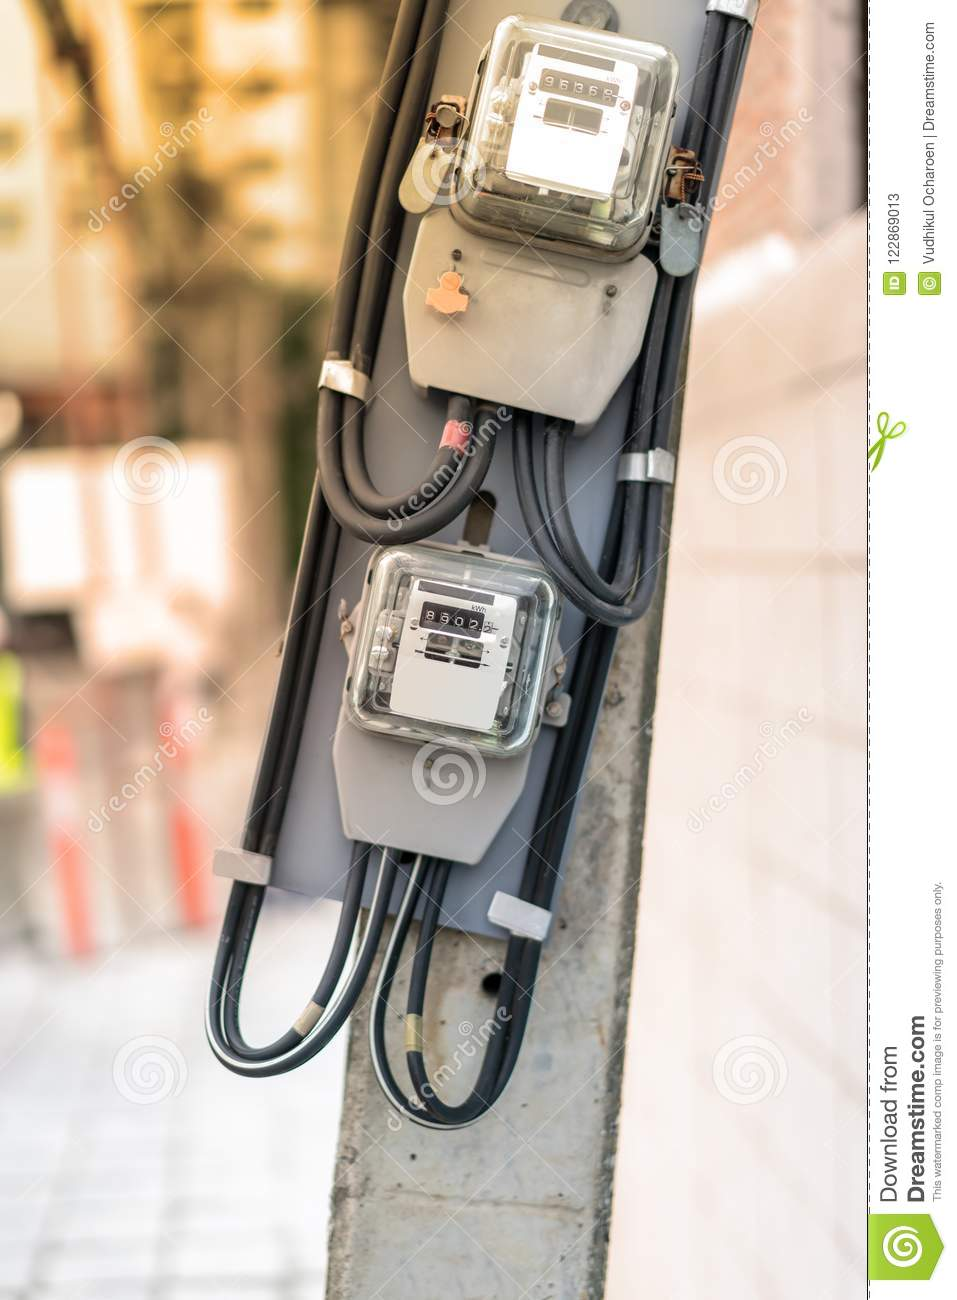 Electrical equipment. Electricity cable and crimper. Electricity